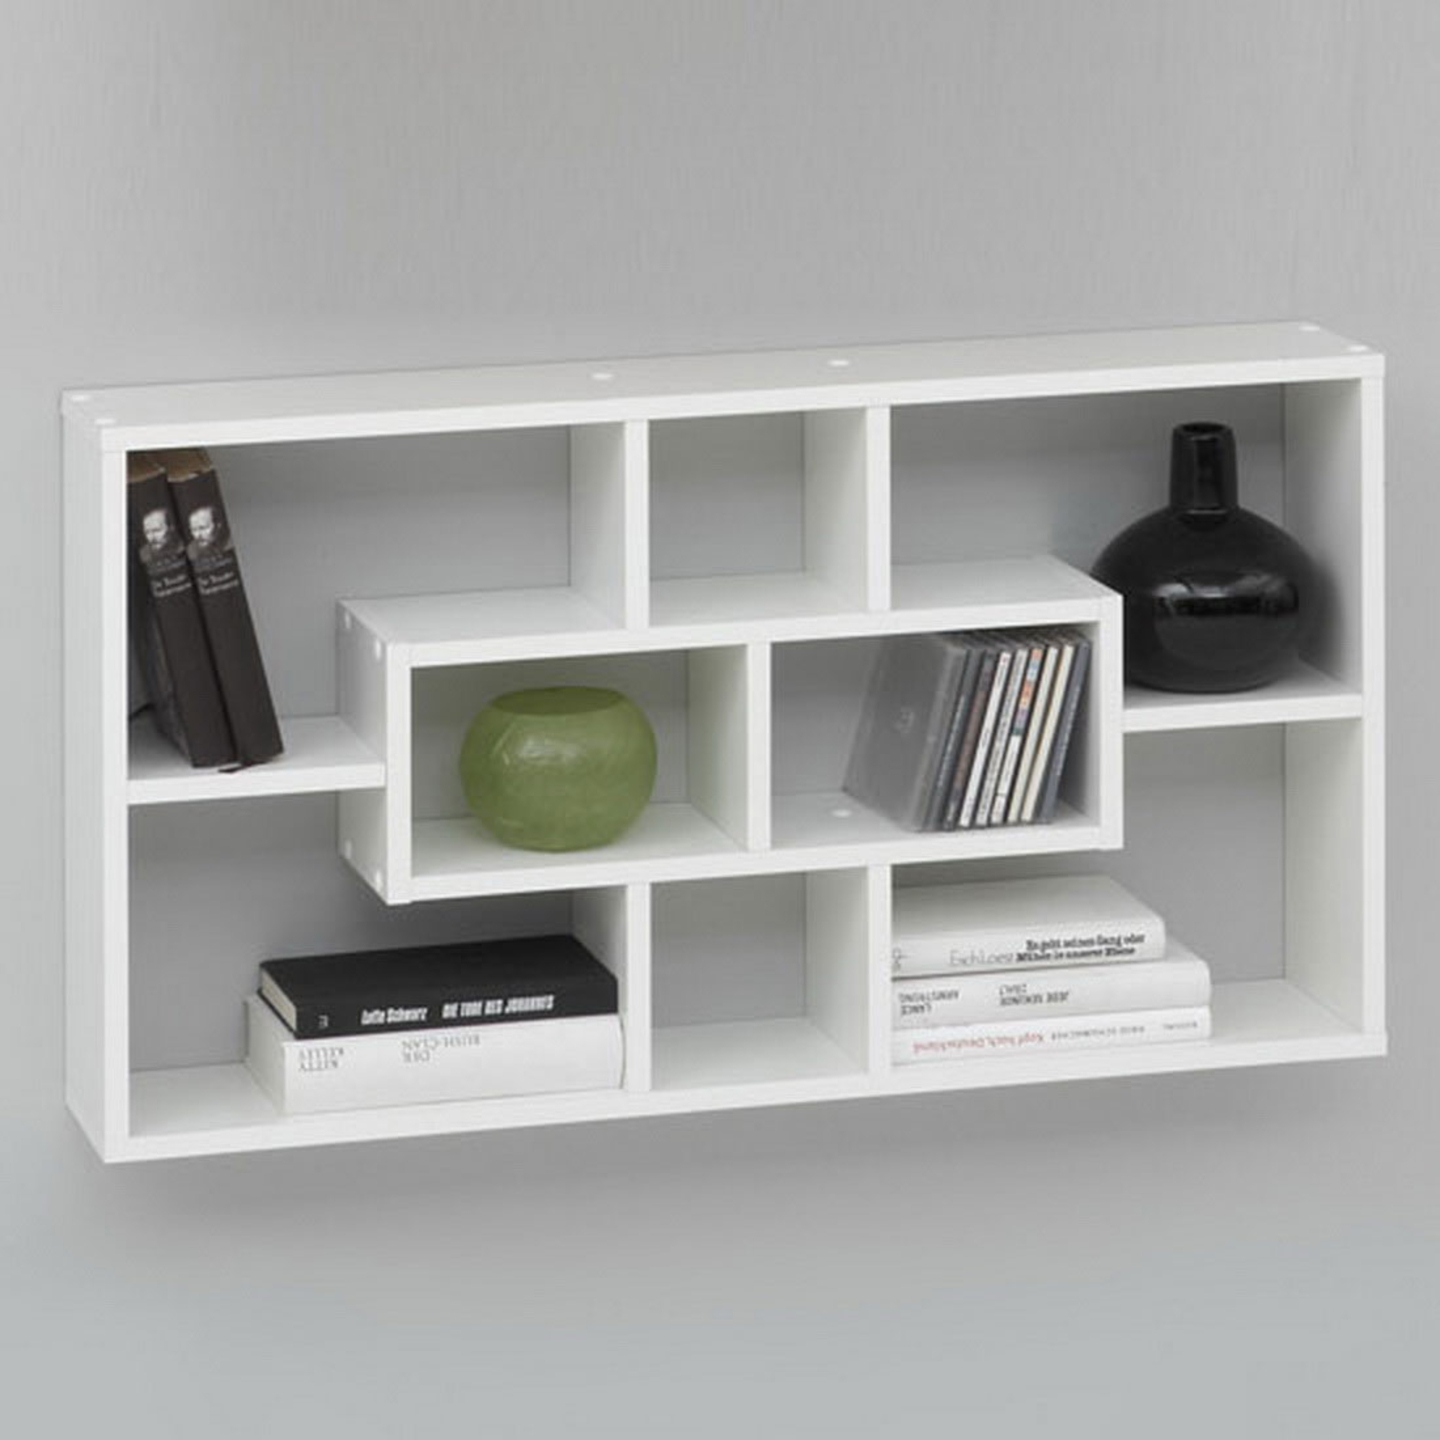 Small Wall Mounted Shelves Cymun Designs With Regard To Wall Mounted Shelves (Image 7 of 15)